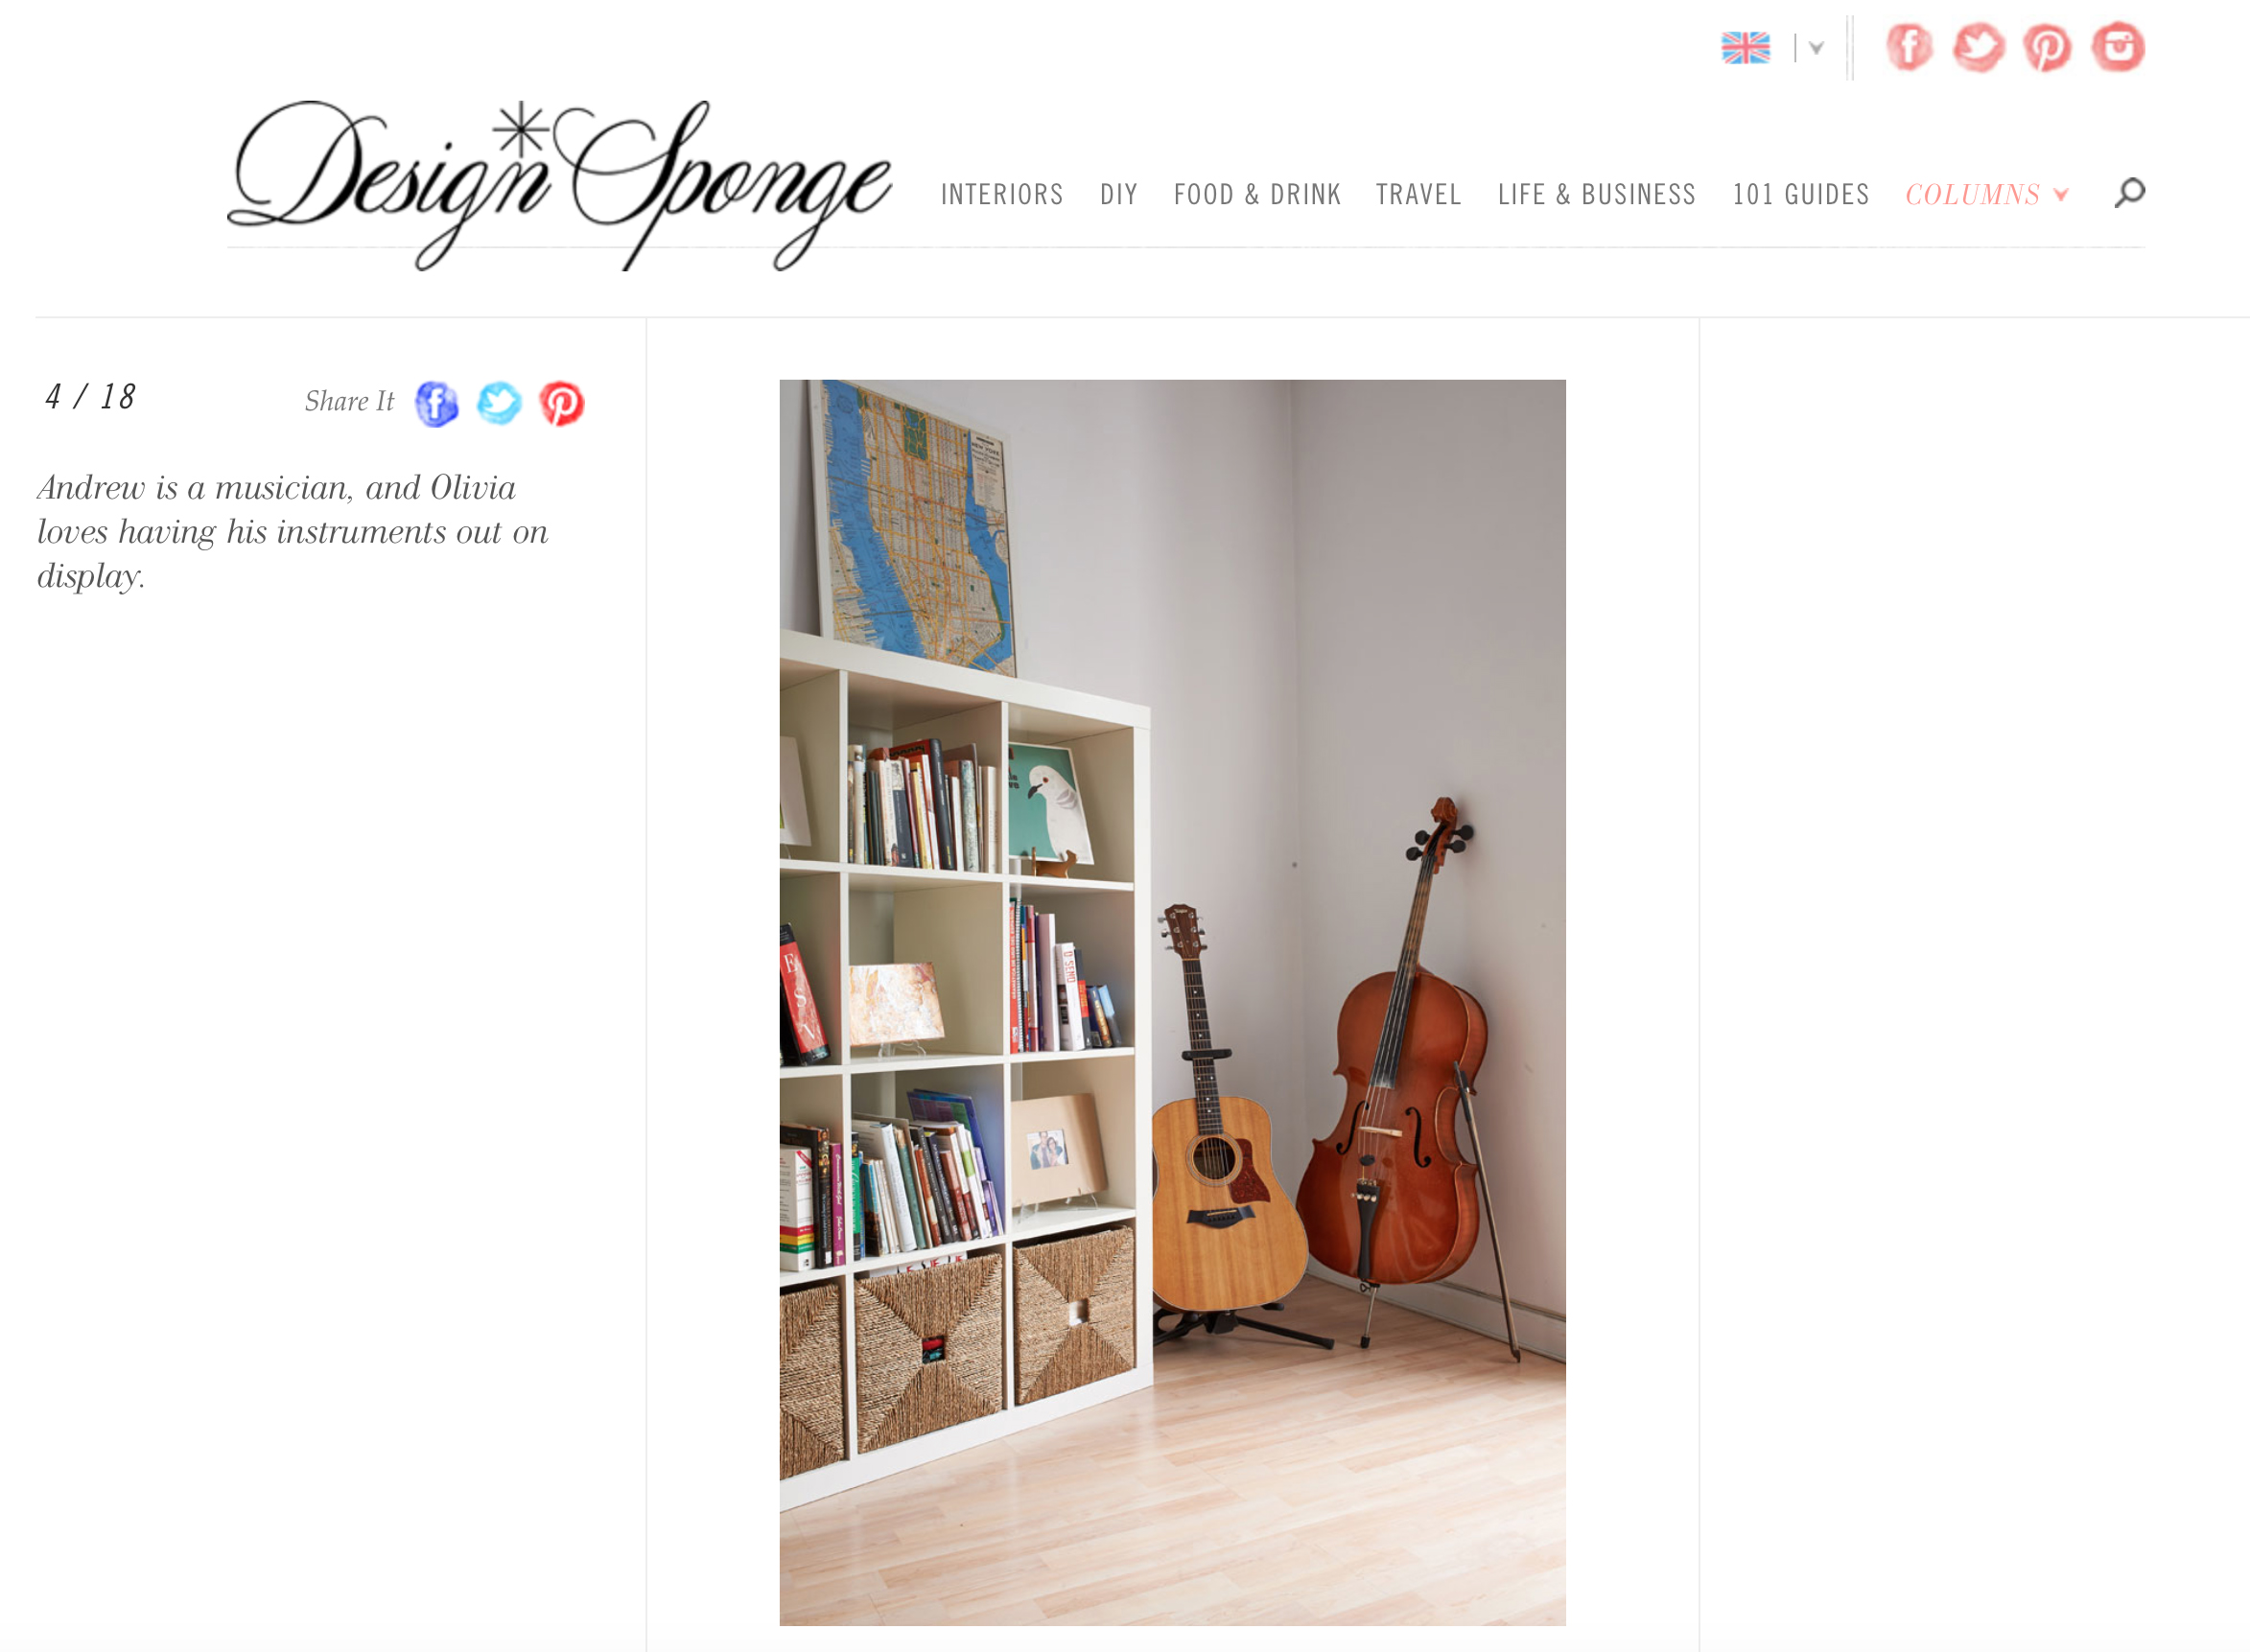 """These cards were once sold at  ShopSCAD  as part of a print series. You can see """"T for Turtle Dove"""" on dislpay in this lovely home in Madrid, Spain that was Featured on one of my favorite blogs,  Design Sponge ."""